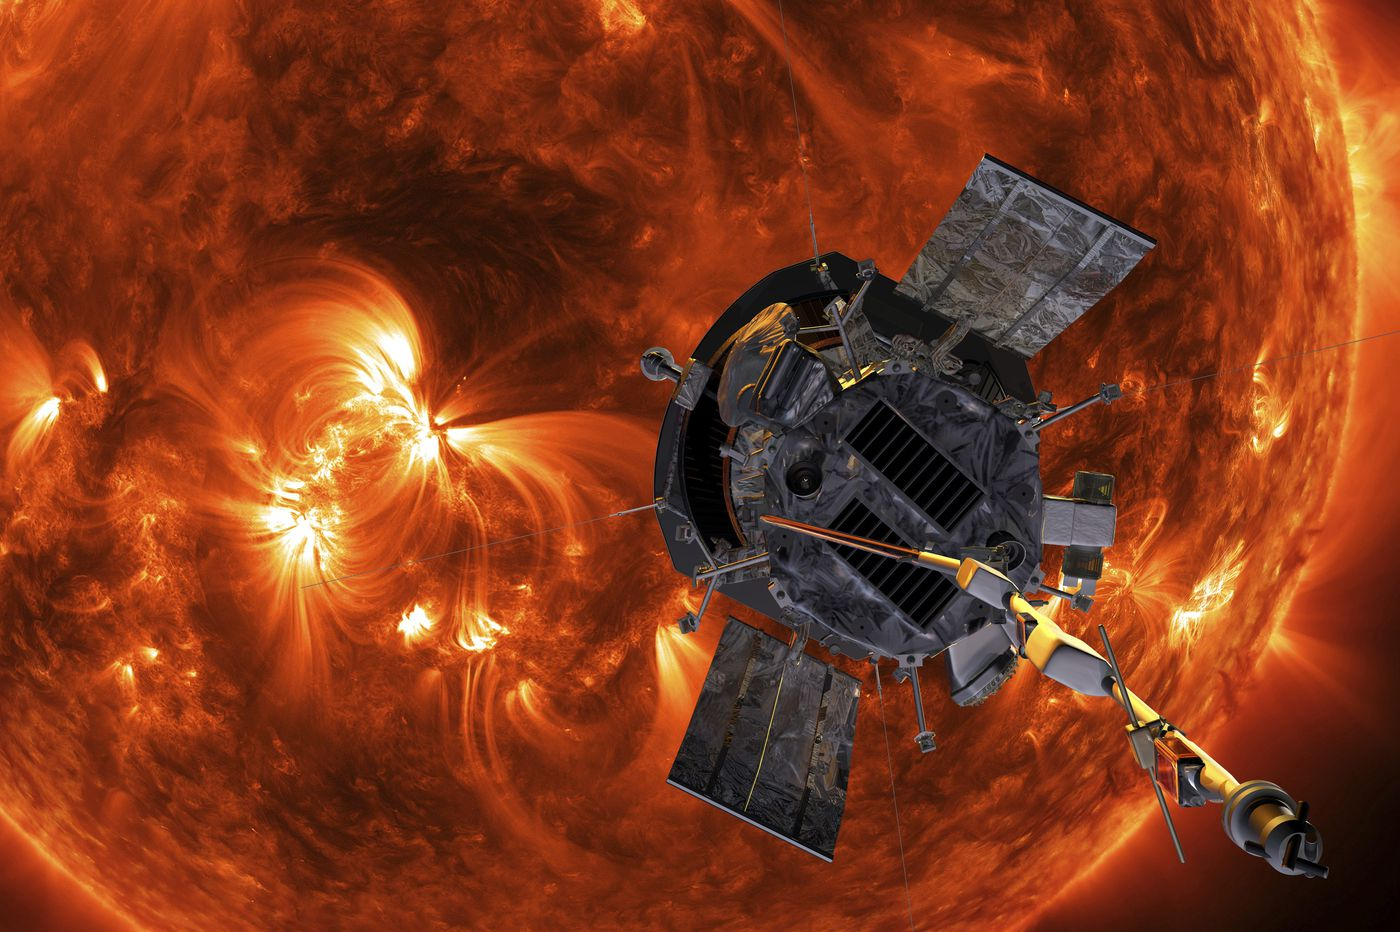 This car-size NASA spacecraft is hurtling closer to the sun than any mission before